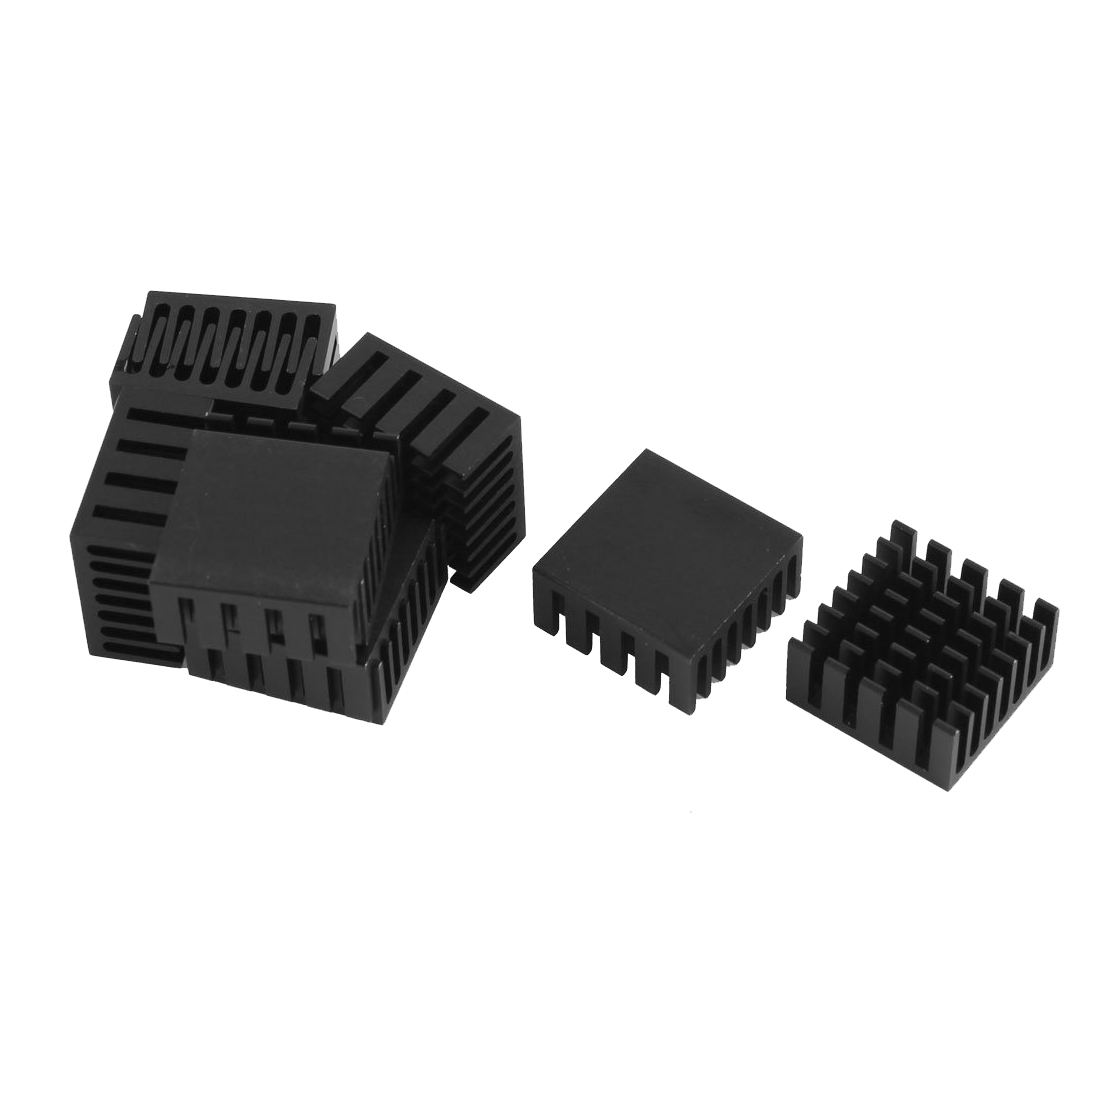 10 Pcs Black Aluminum Cooler Radiator Heat Sink Heatsink 20mm X 20mm X 10mm